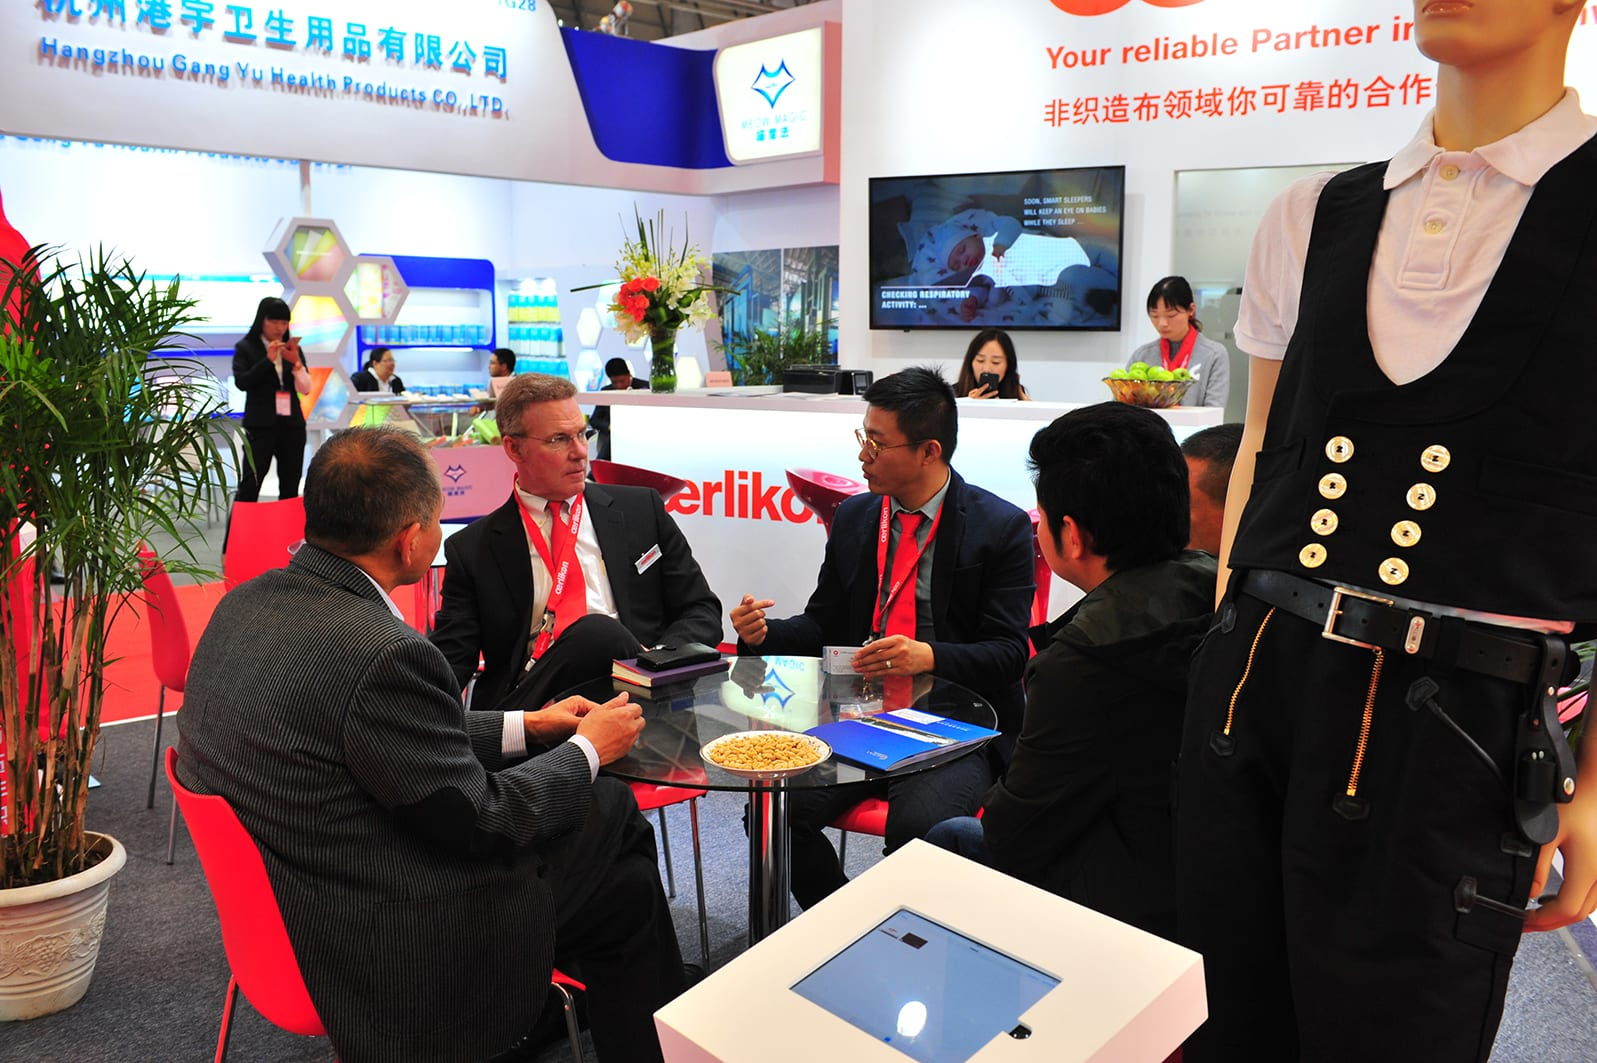 The Oerlikon group's nonwoven business unit presented itself successfully in China